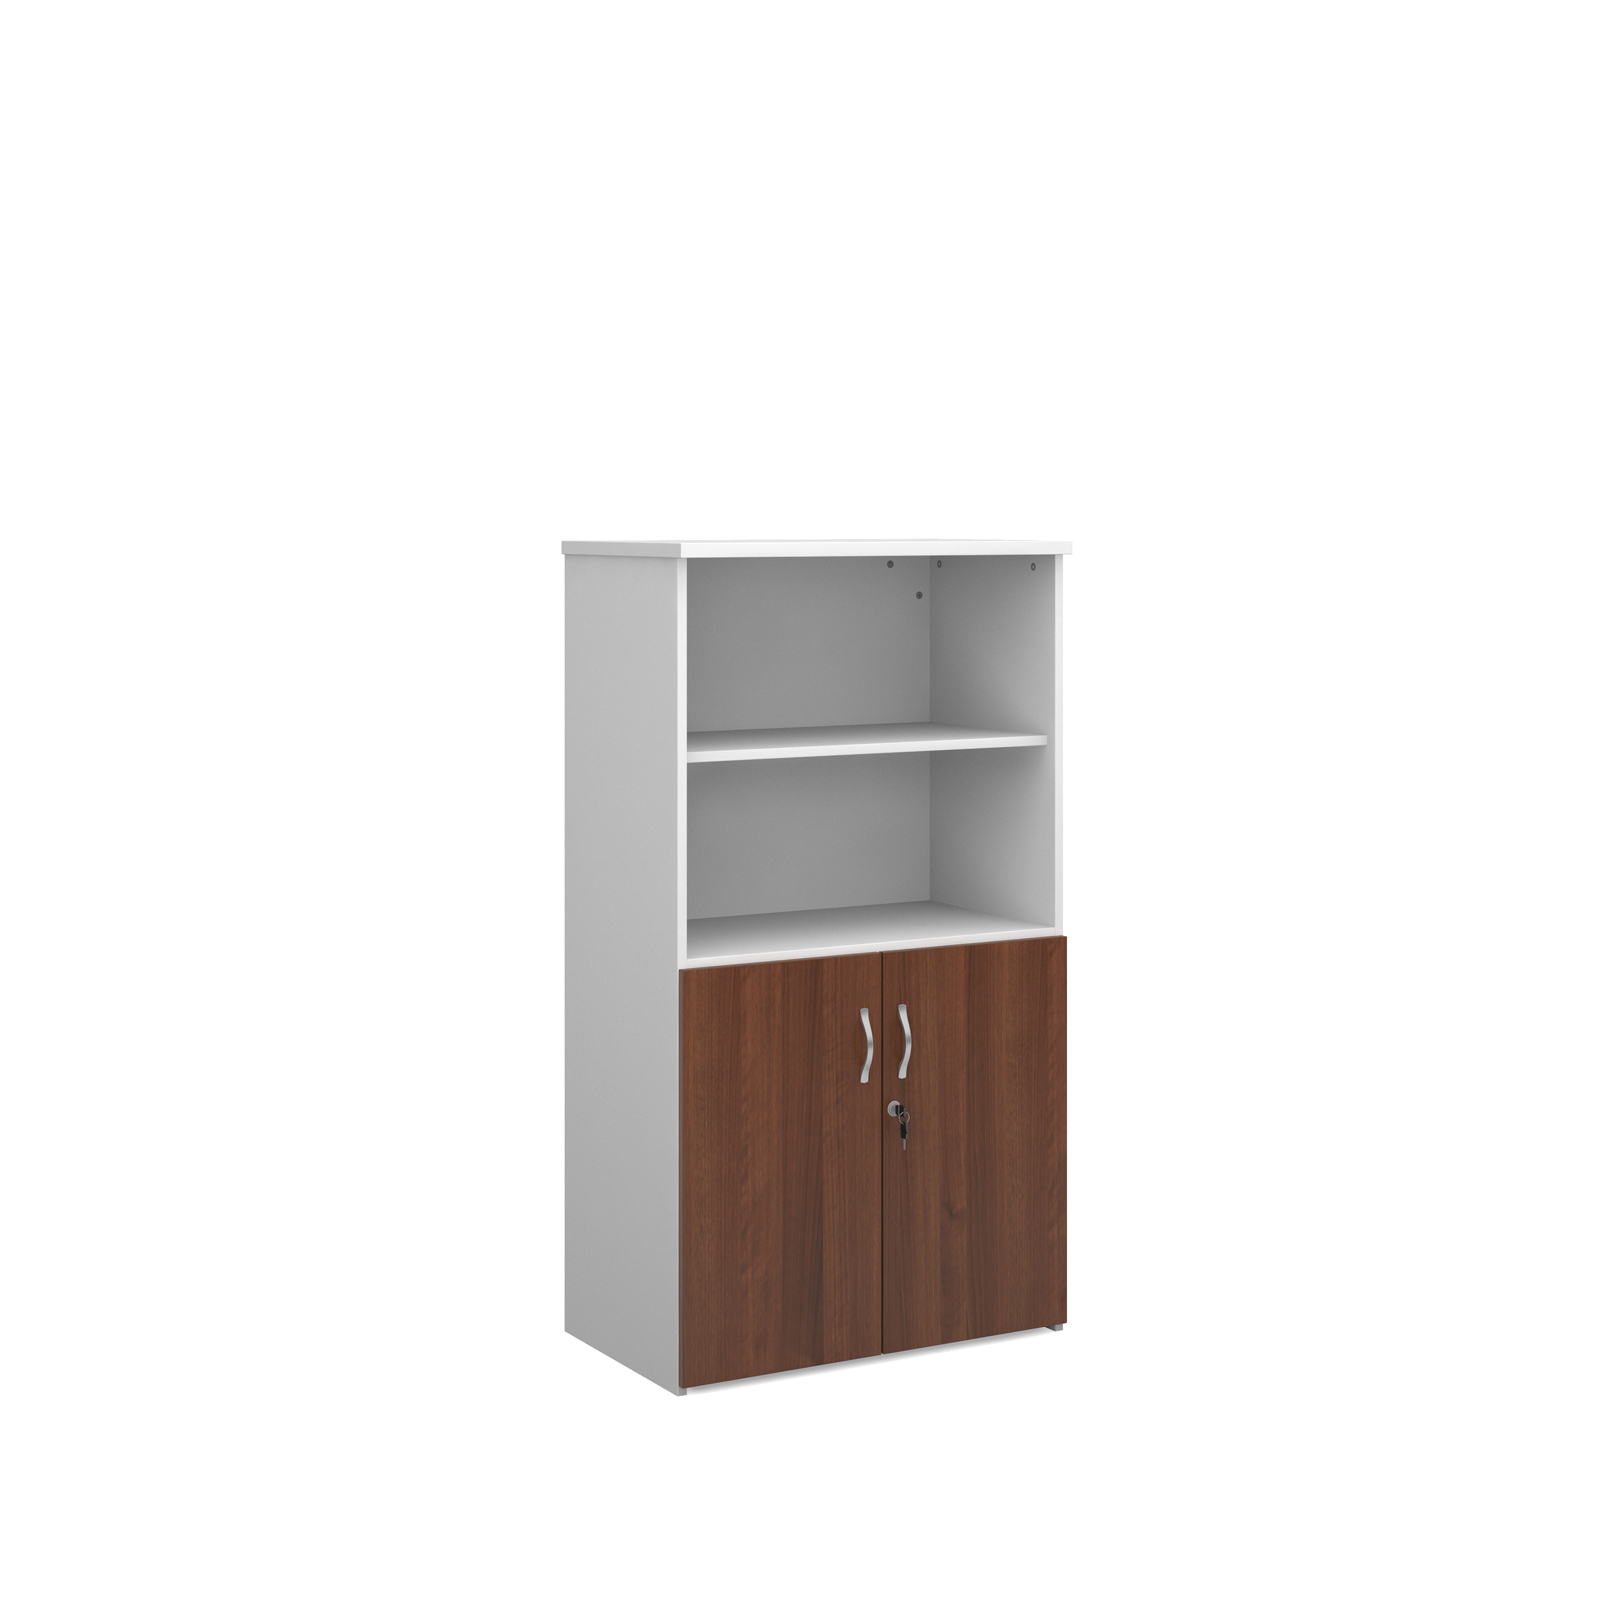 Fun Standard Combination Open Shelf Bookcase Lockable Door Standard Combination Open Shelf Bookcase Lockable Door 3 Shelf Bookcase Espresso 3 Shelf Bookcase Instructions Pdf houzz-02 3 Shelf Bookcase